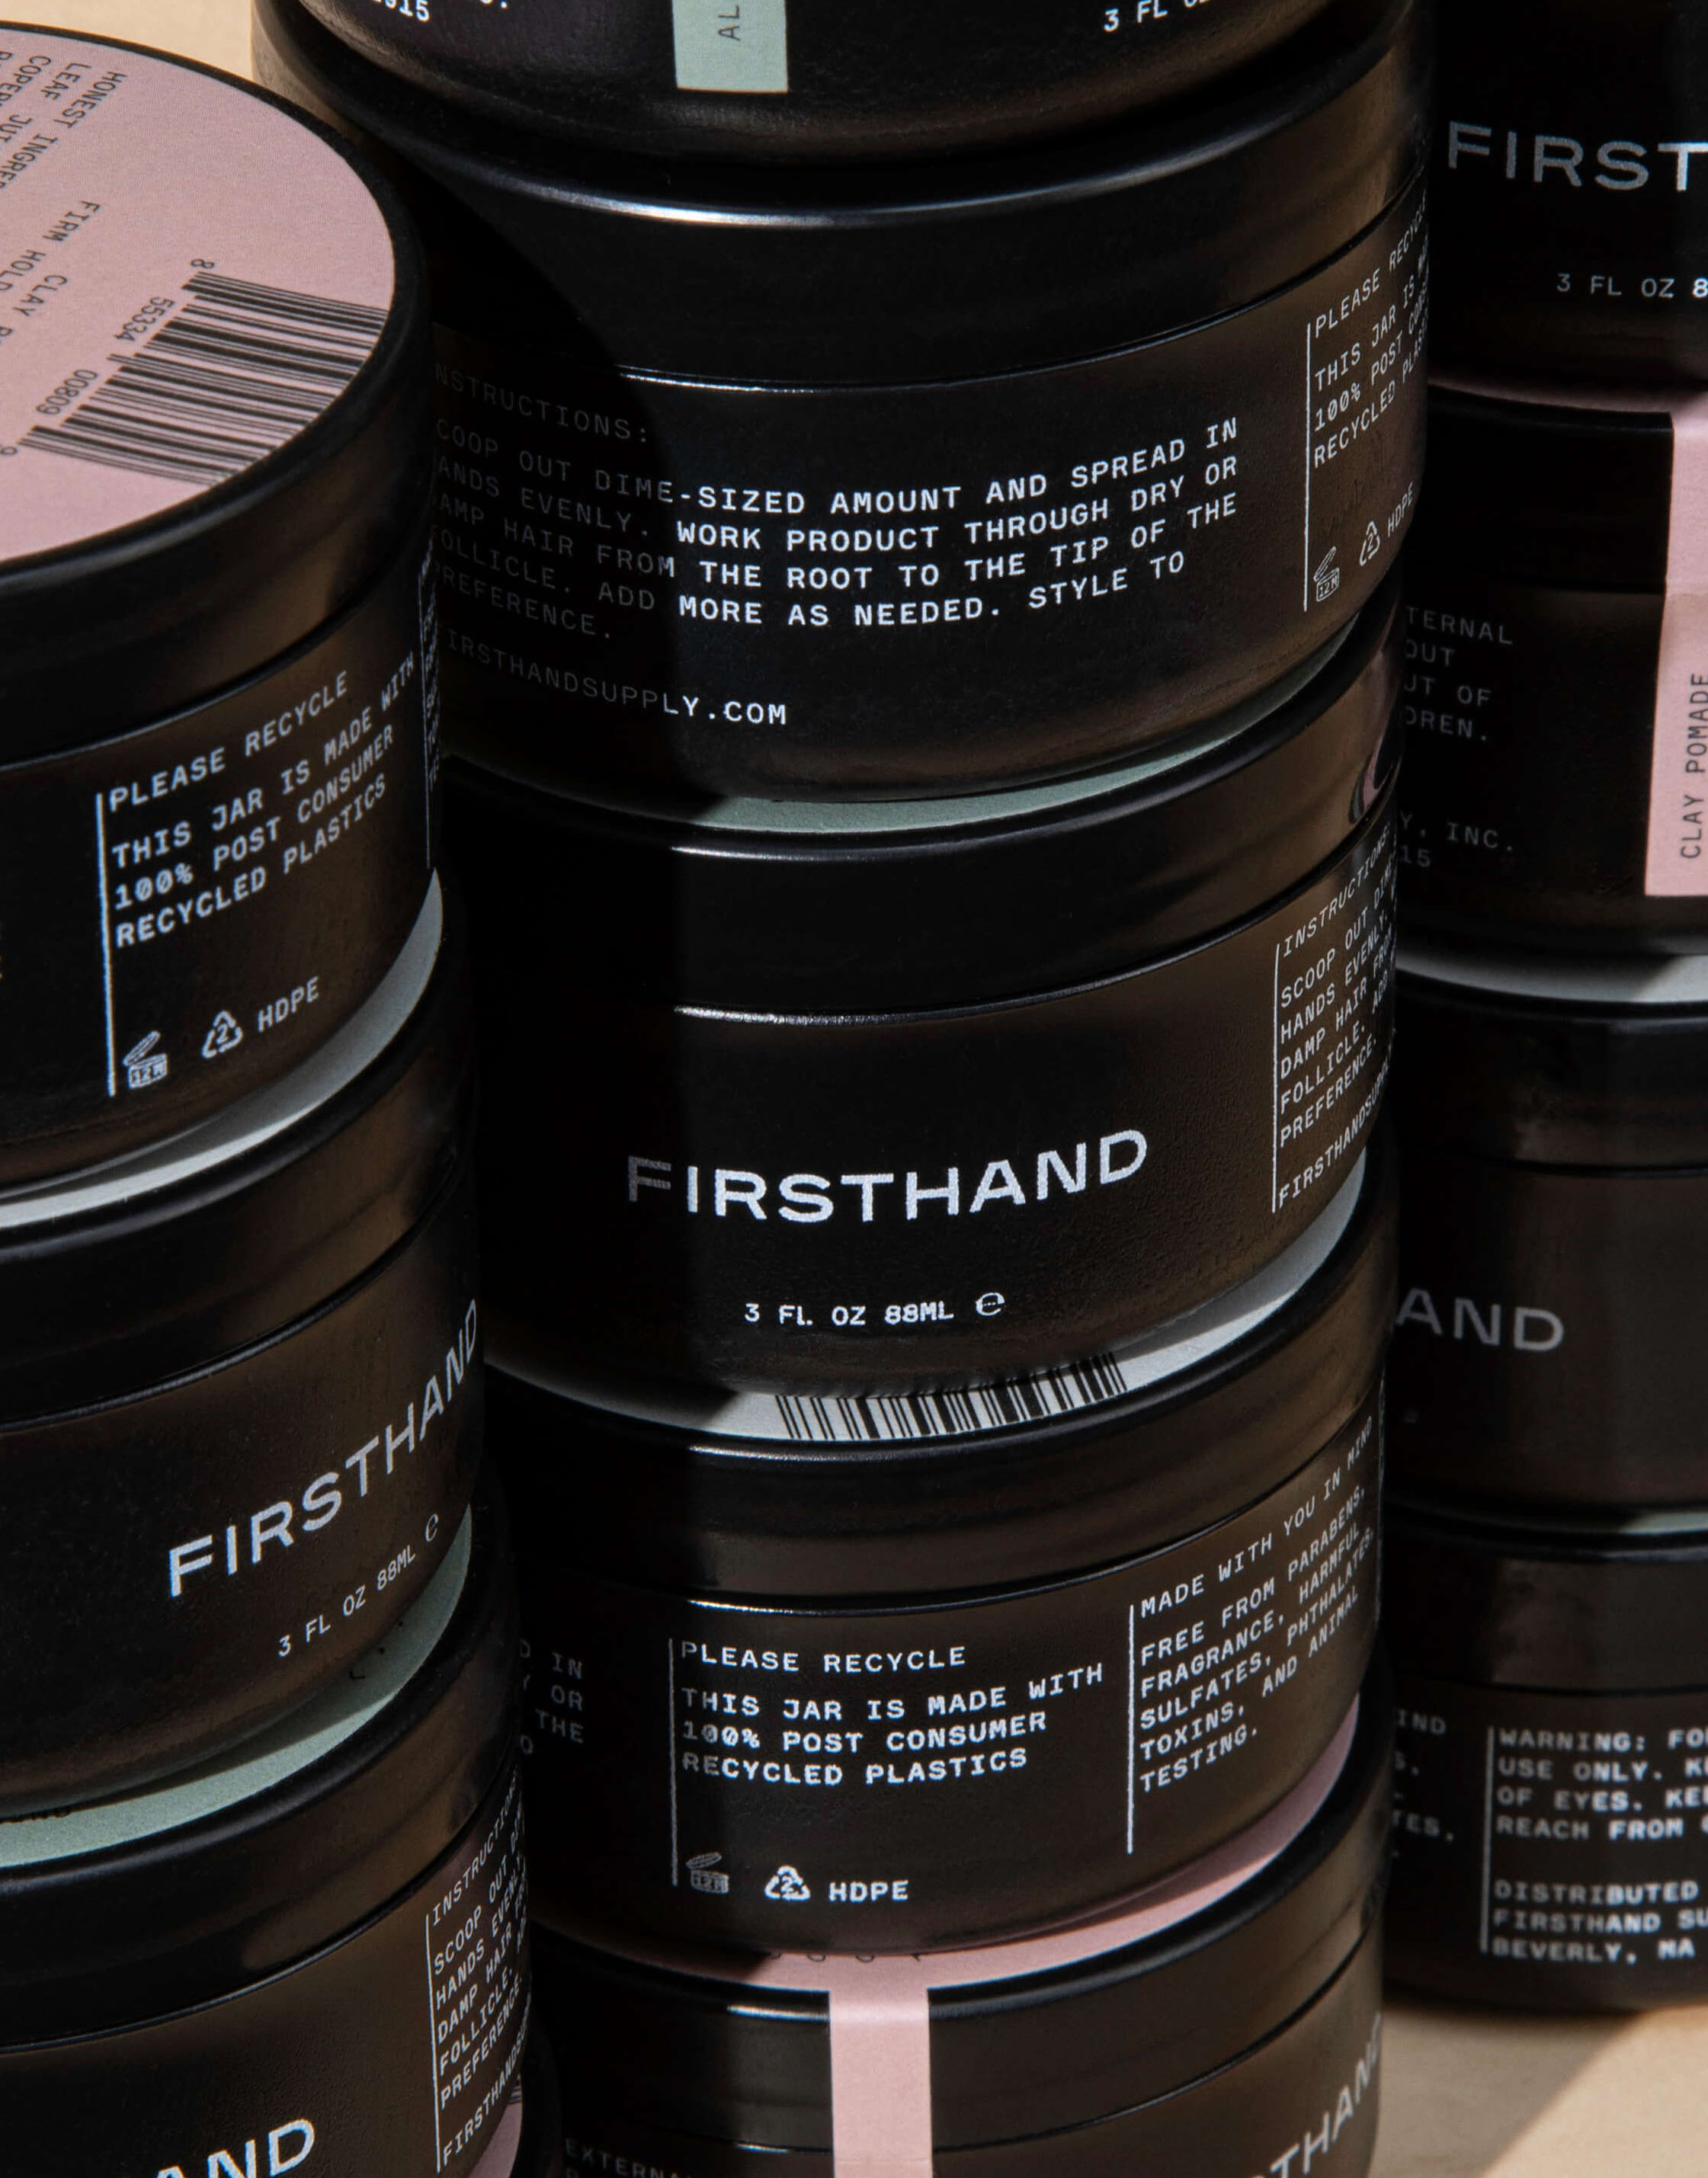 Firsthand - Jars Detail